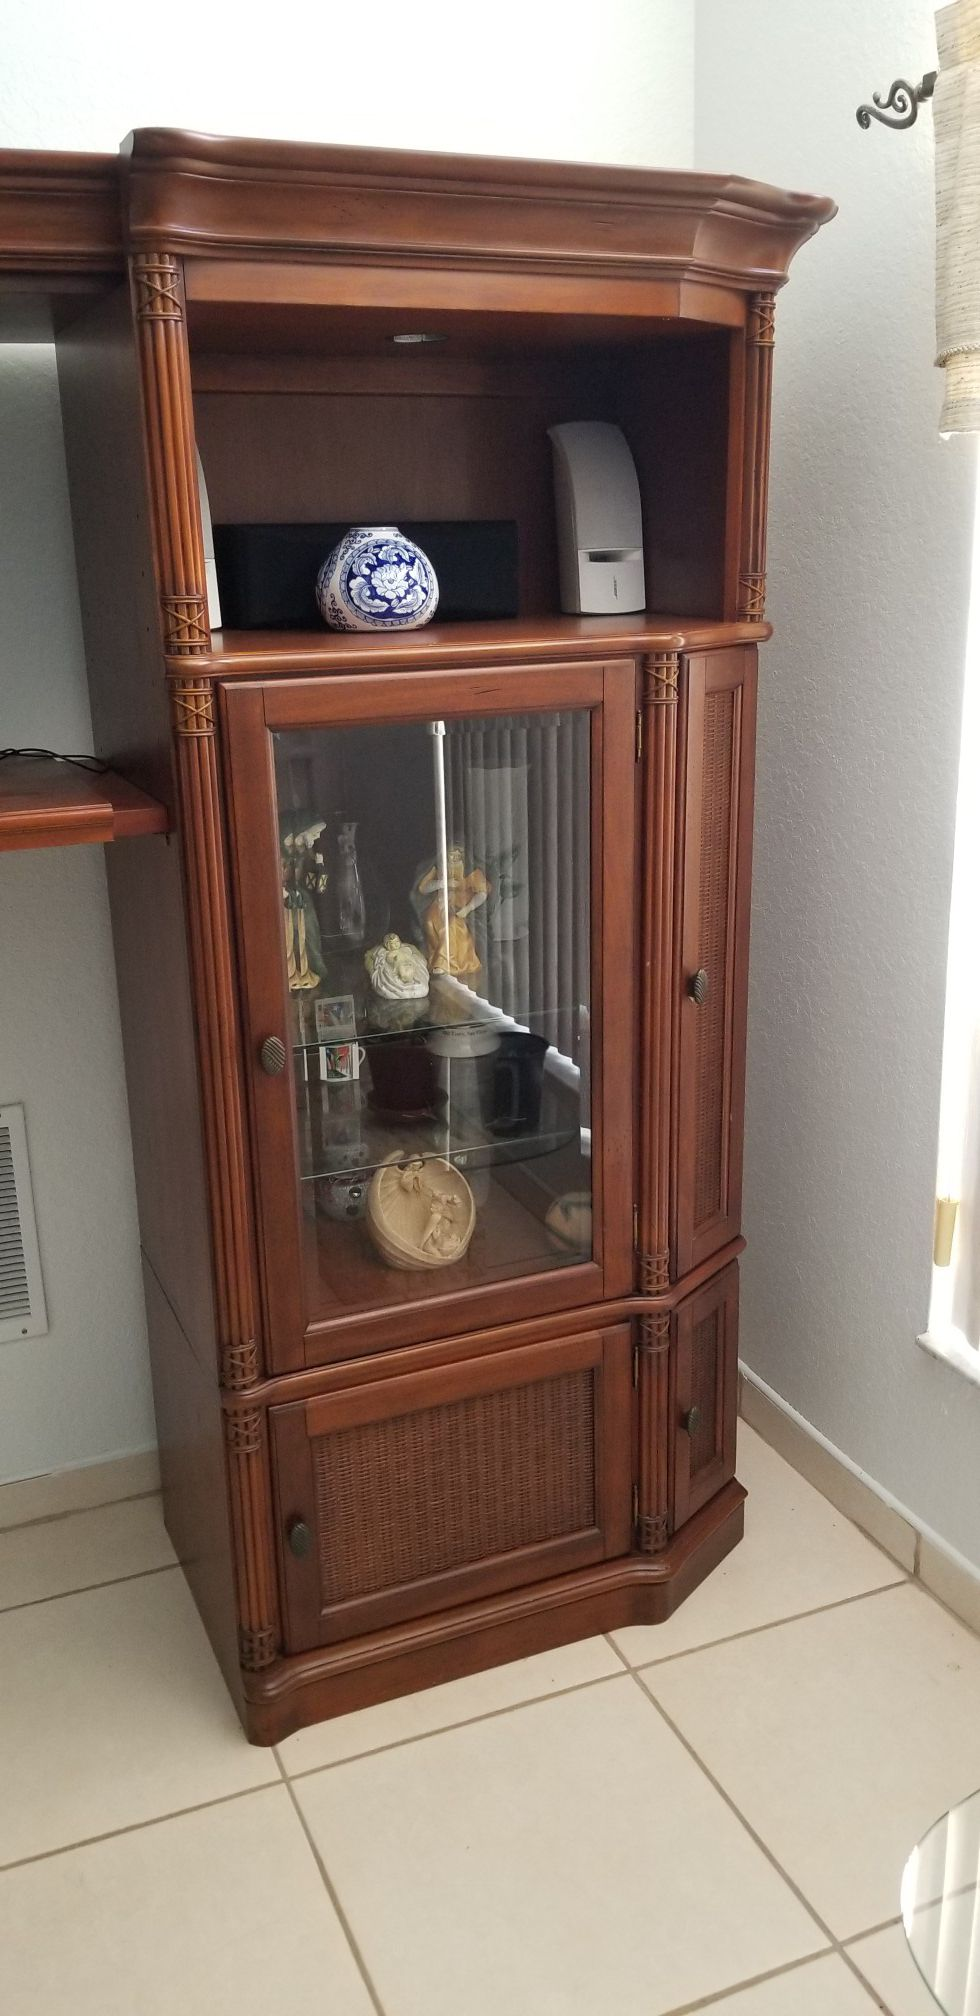 Wall Unit or Entertainment center